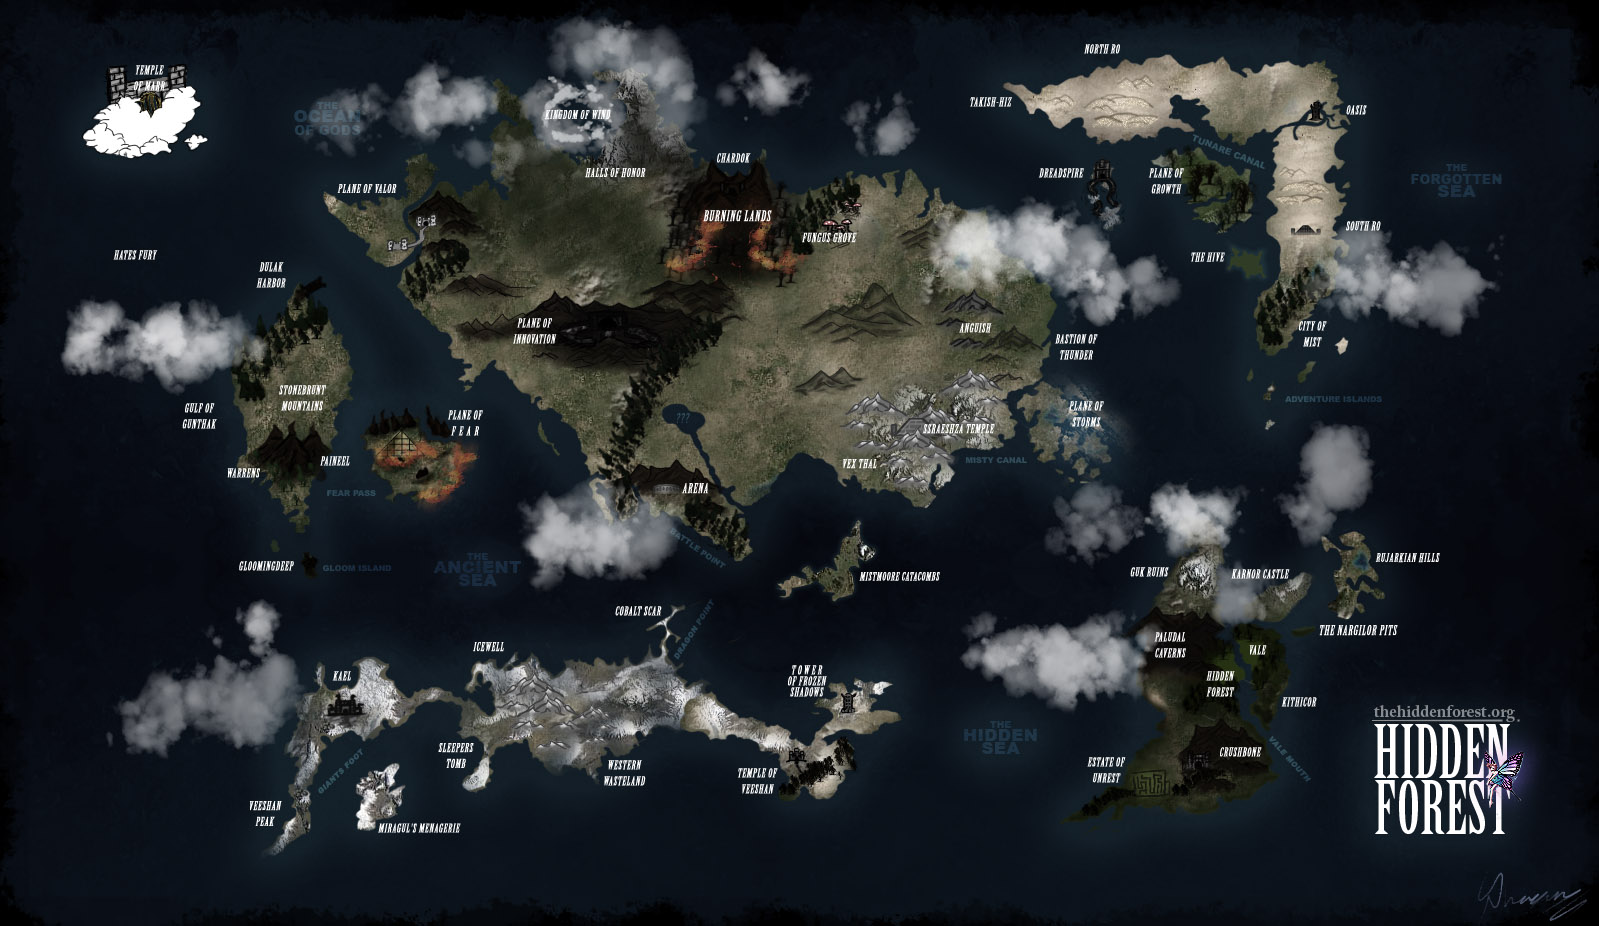 THF] Server information page - The Hidden Forest